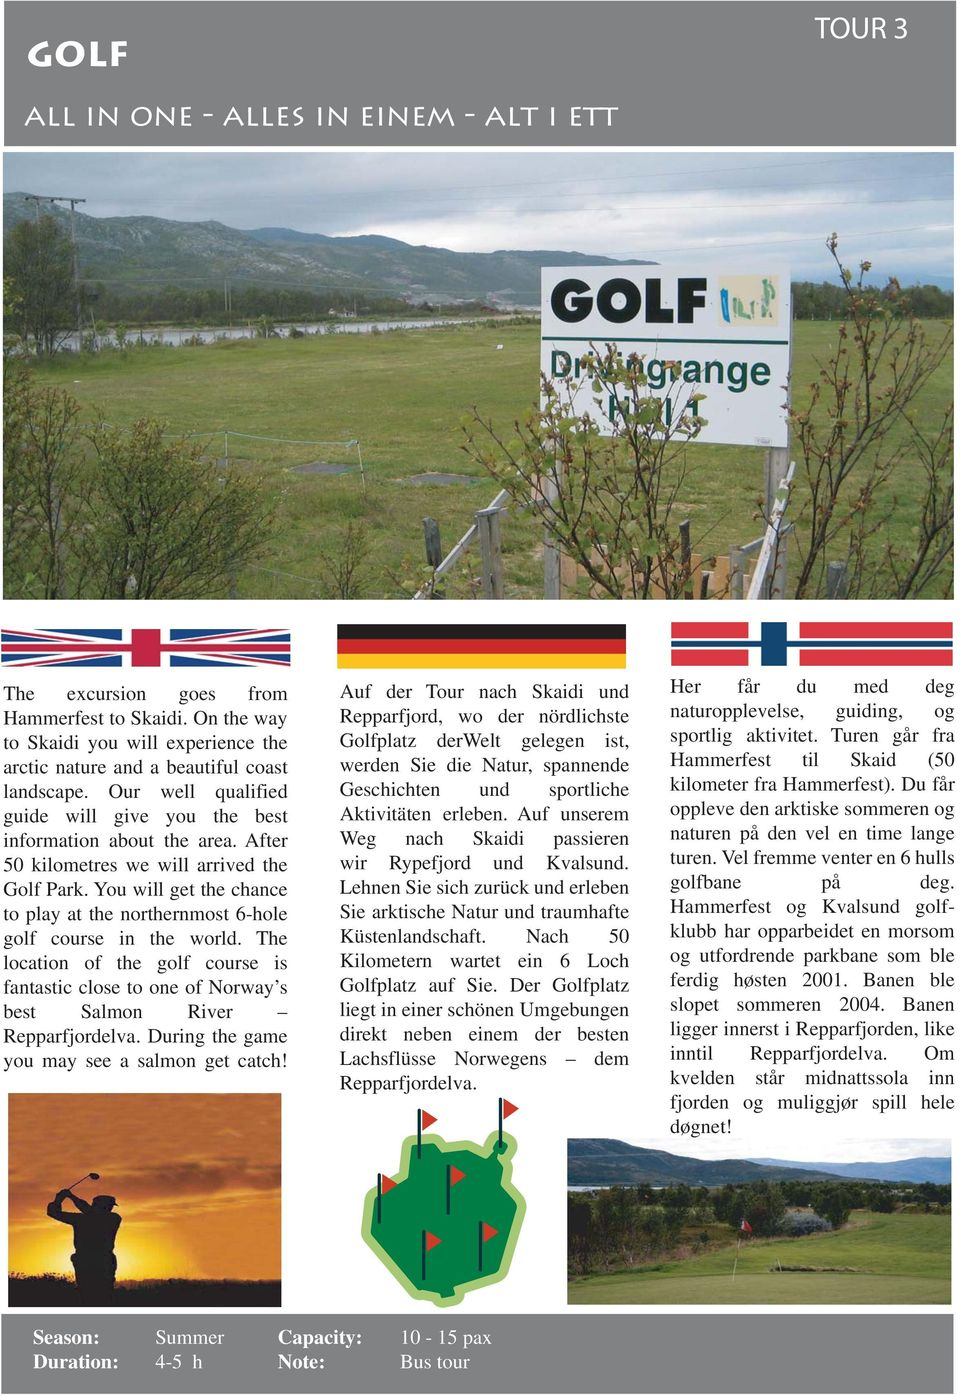 You will get the chance to play at the northernmost 6-hole golf course in the world. The location of the golf course is fantastic close to one of Norway s best Salmon River Repparfjordelva.